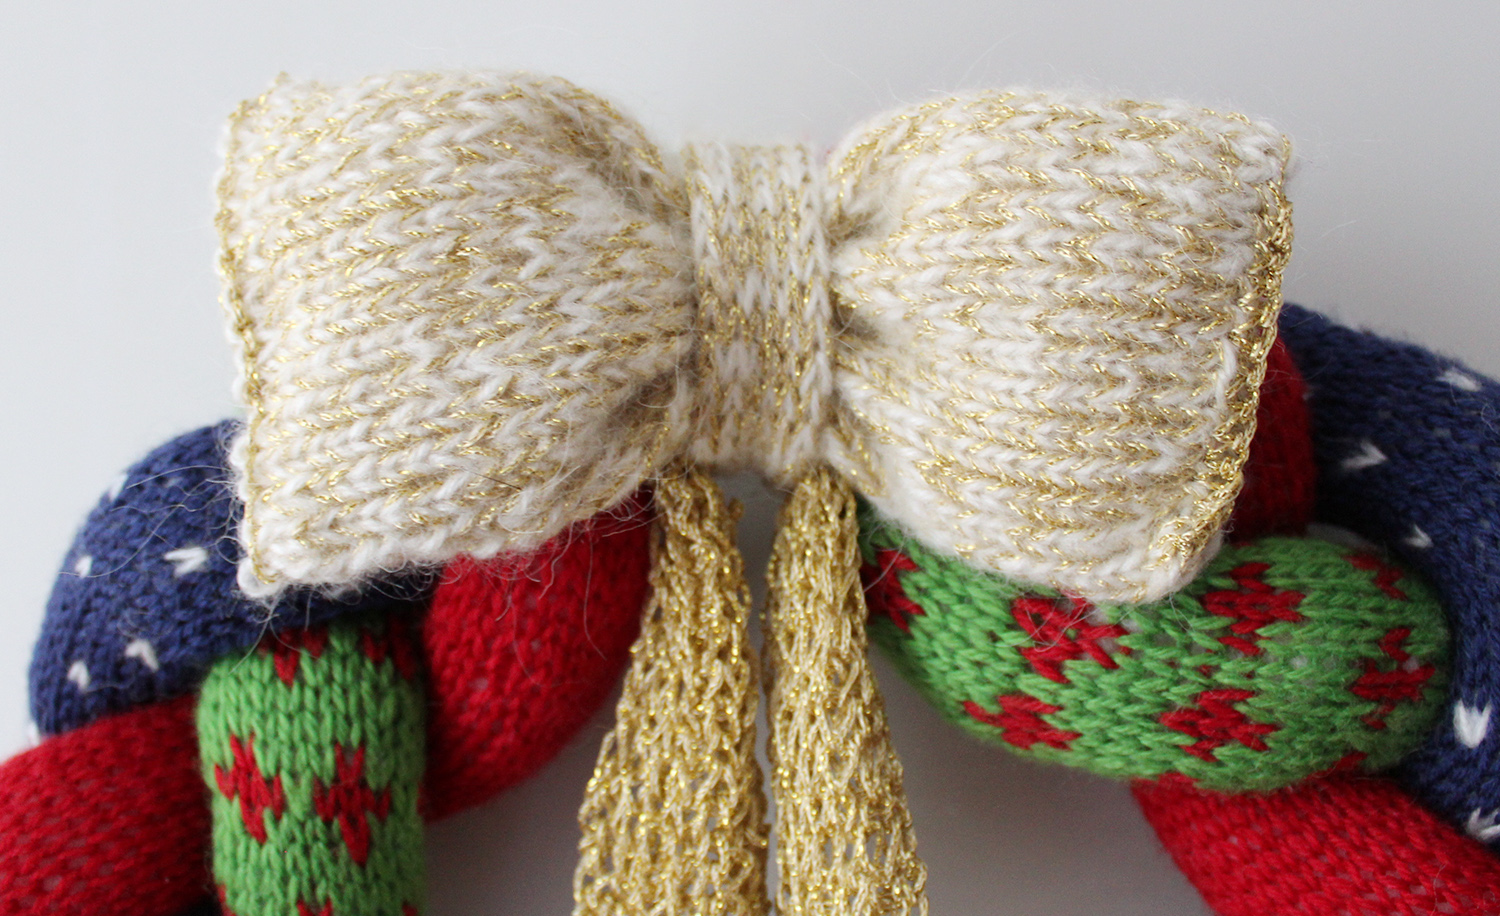 Knitted Christmas wreath - Knit & Crochet Christmas